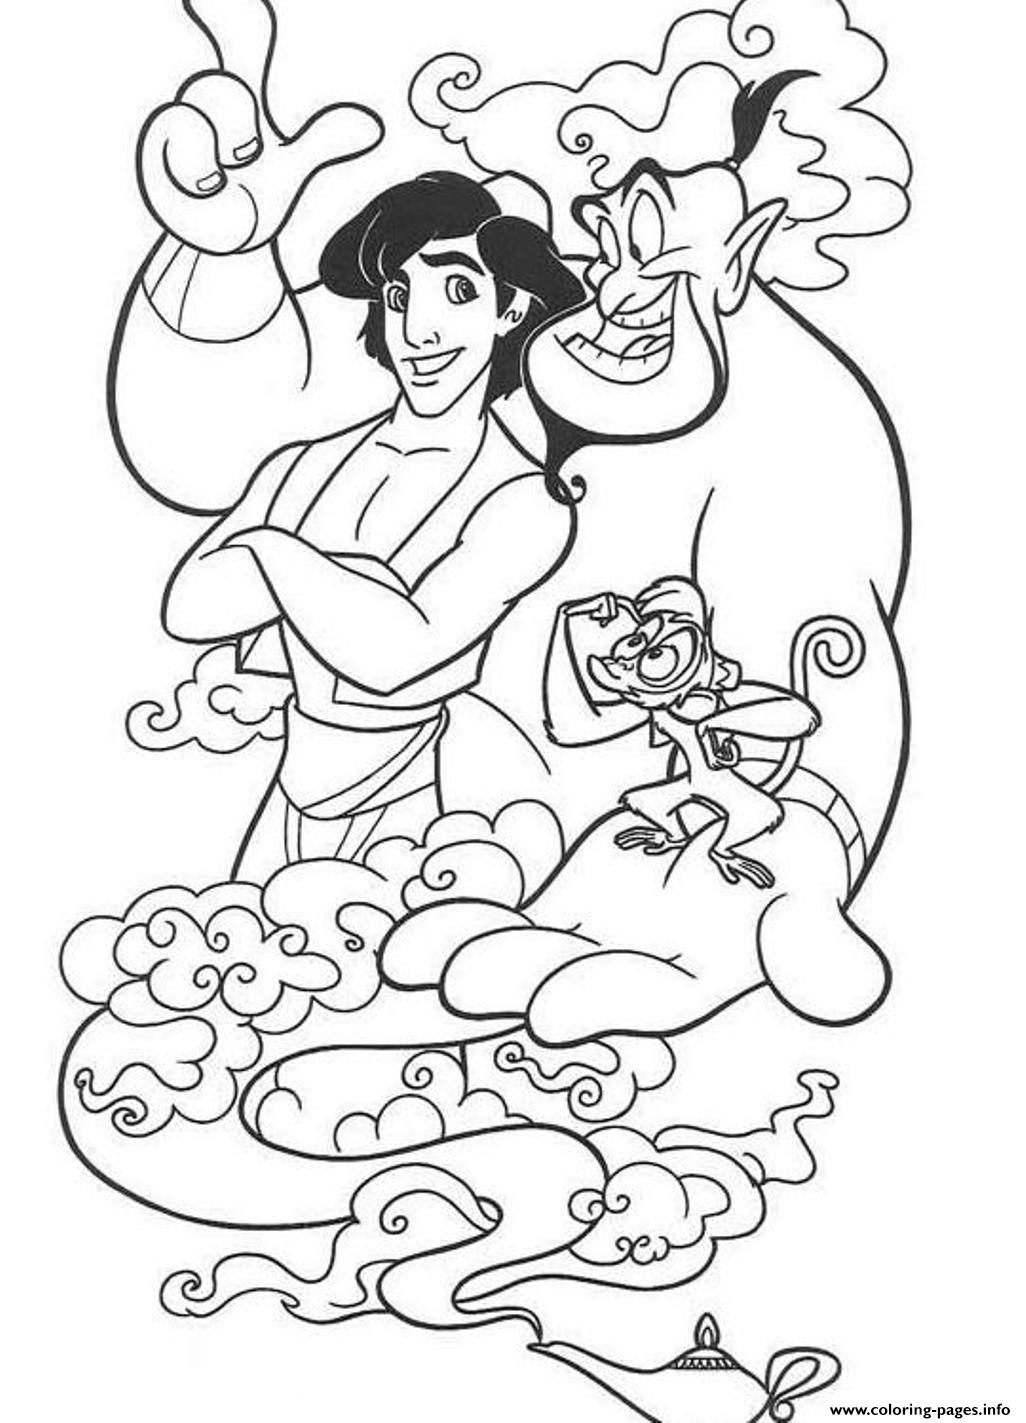 Abu Genie And Aladdin Disney7665 Coloring Pages Printable